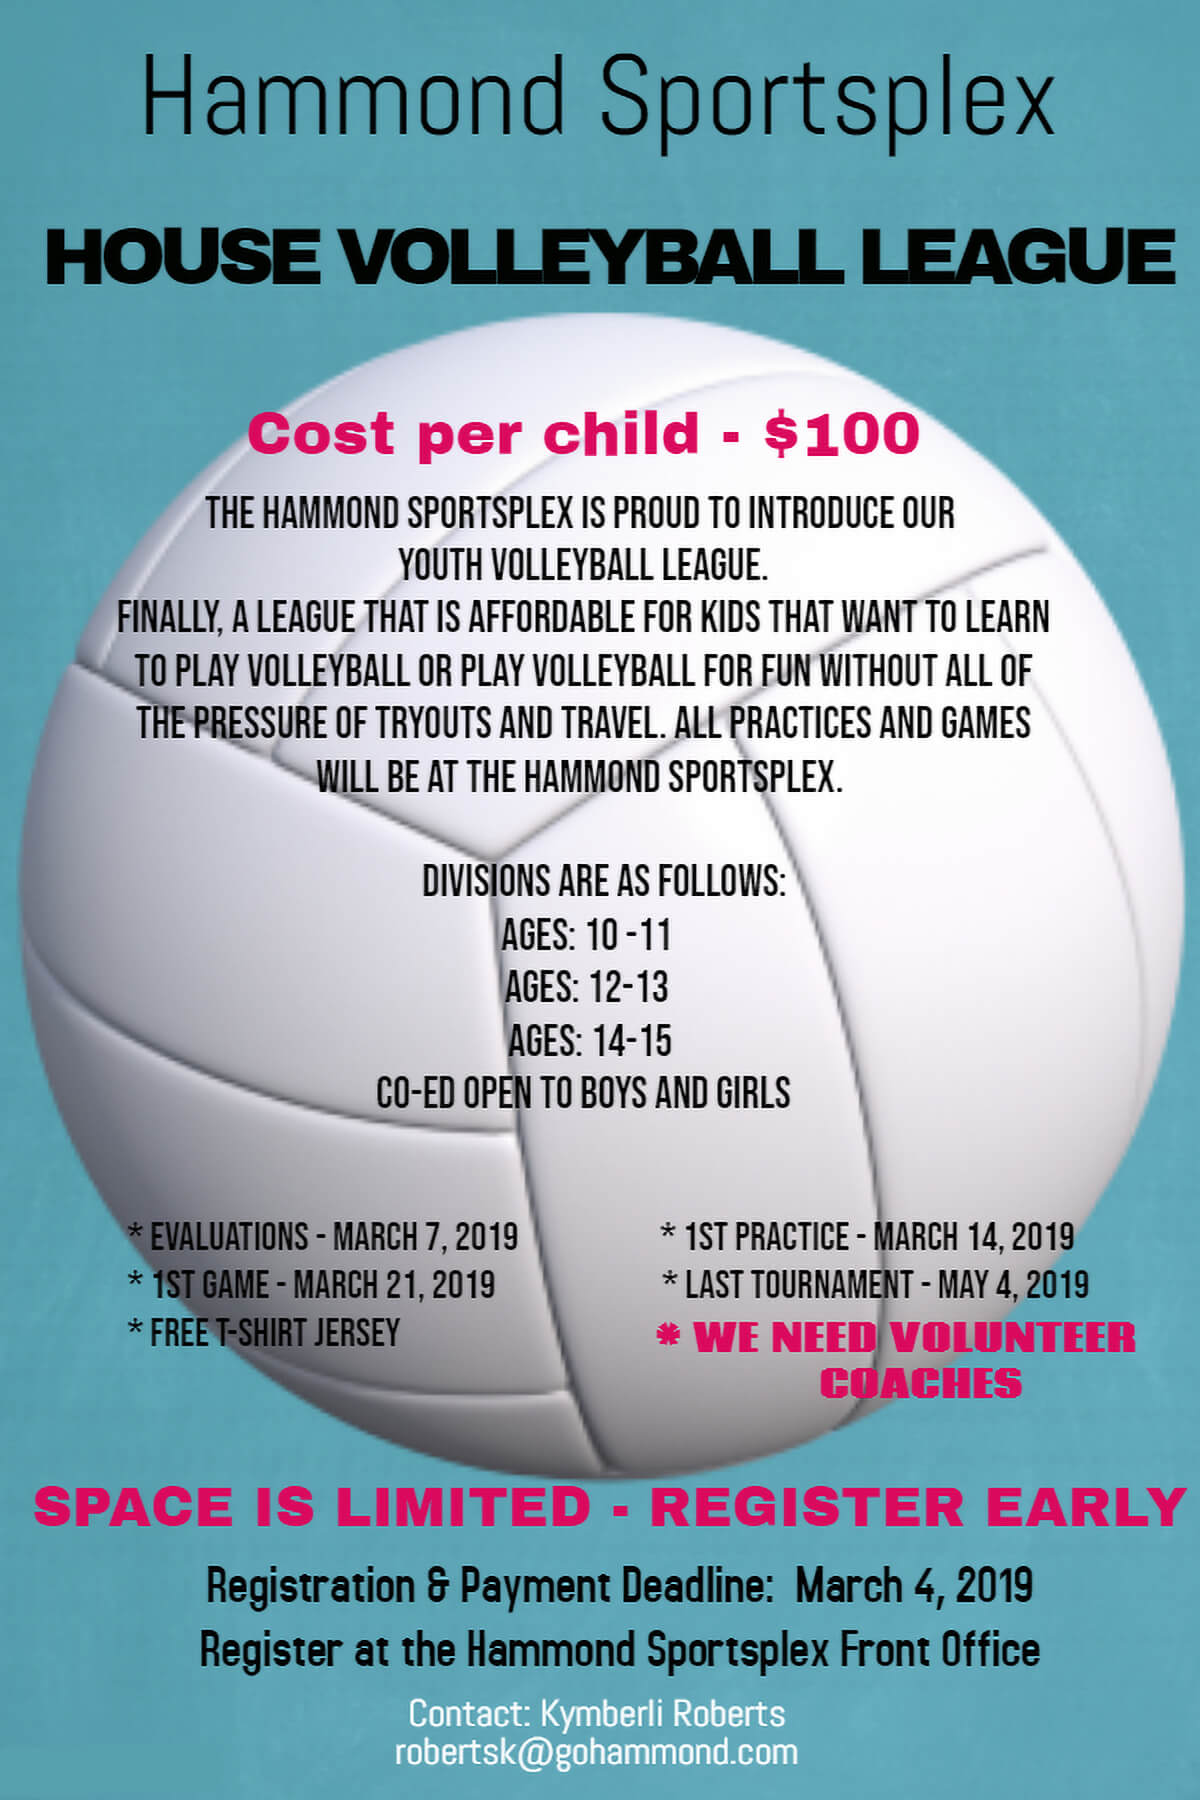 Hammond Sportsplex to Host House Youth Volleyball League